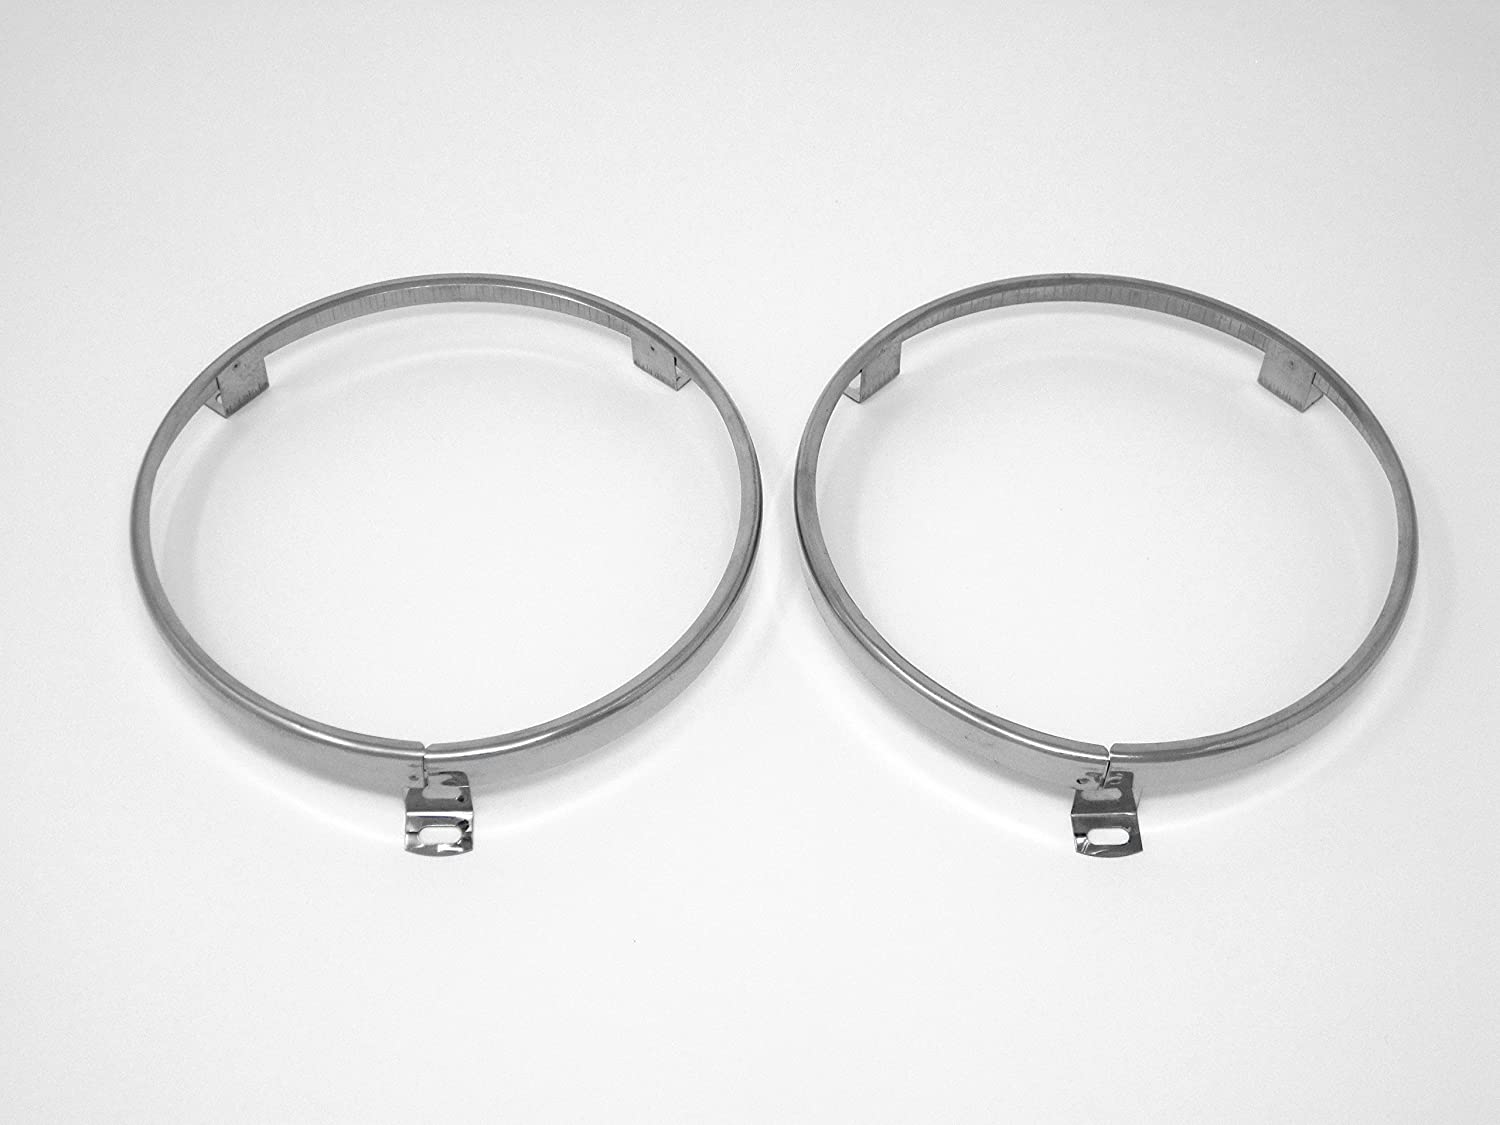 "5 3/4"" Headlight Headlamp Trim Ring Retainer Pair for Datsun 520 521 620 classicimports240z"